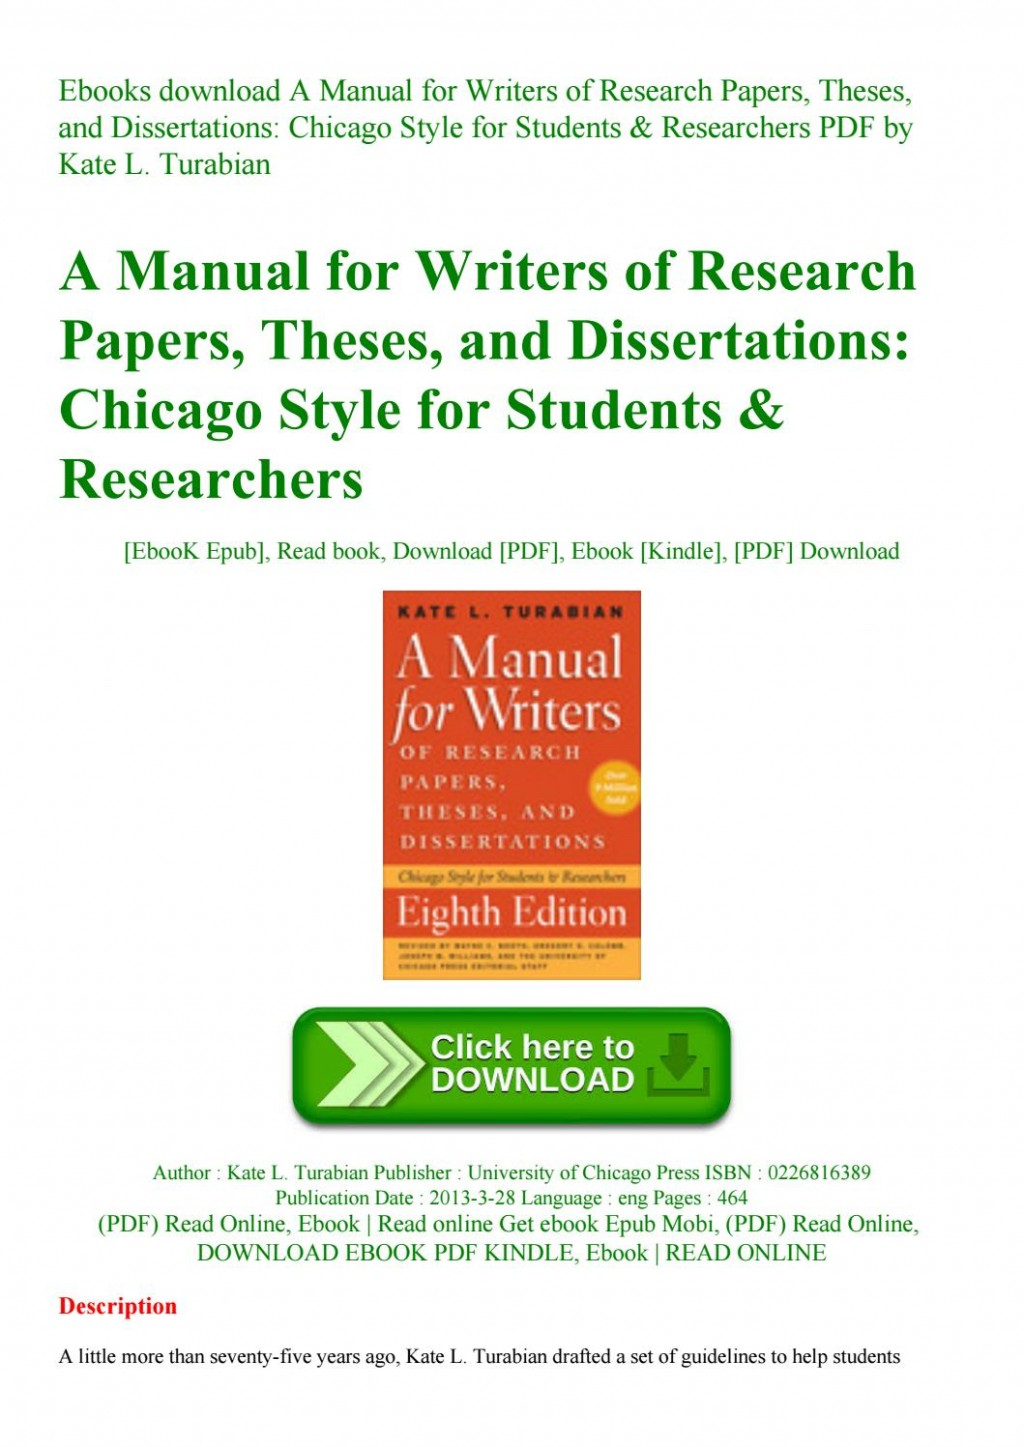 019 Research Paper Manual For Writers Of Papers Theses And Dissertations Page 1 Fearsome A Ed 8 Large